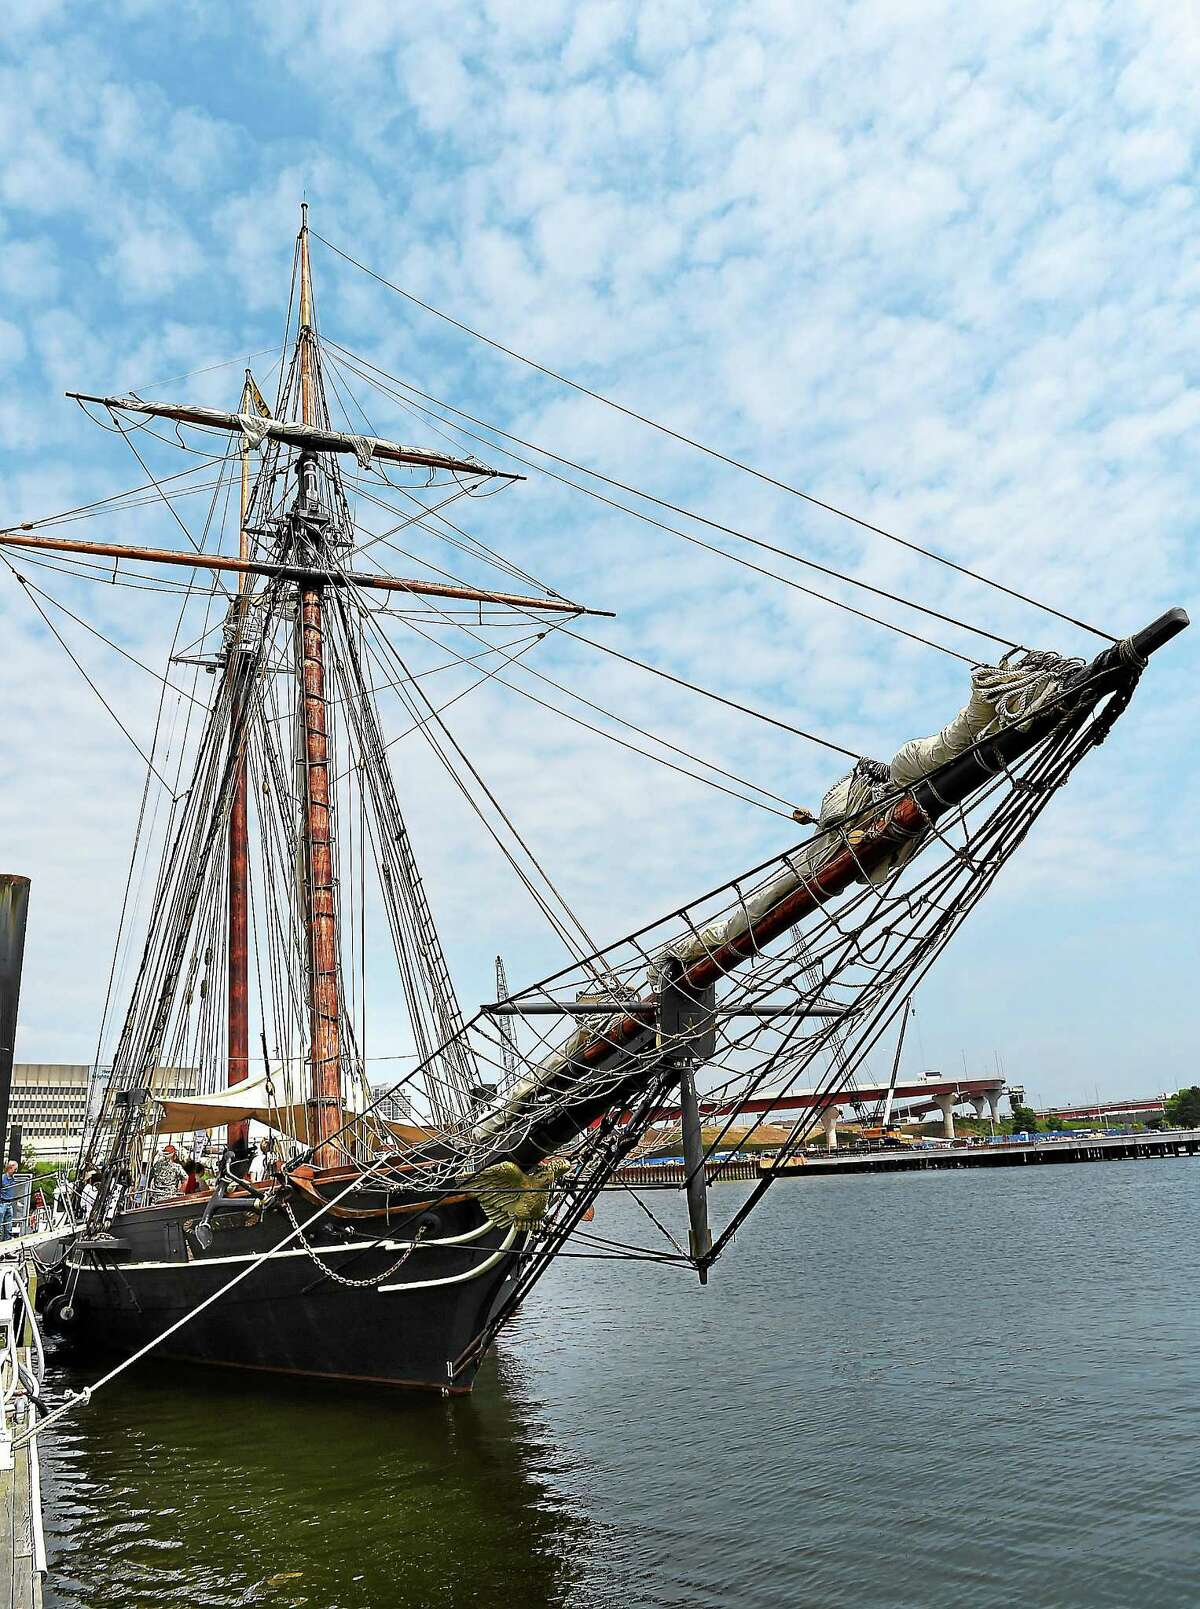 The Amistad, docked in New Haven Harbor earlier this month.